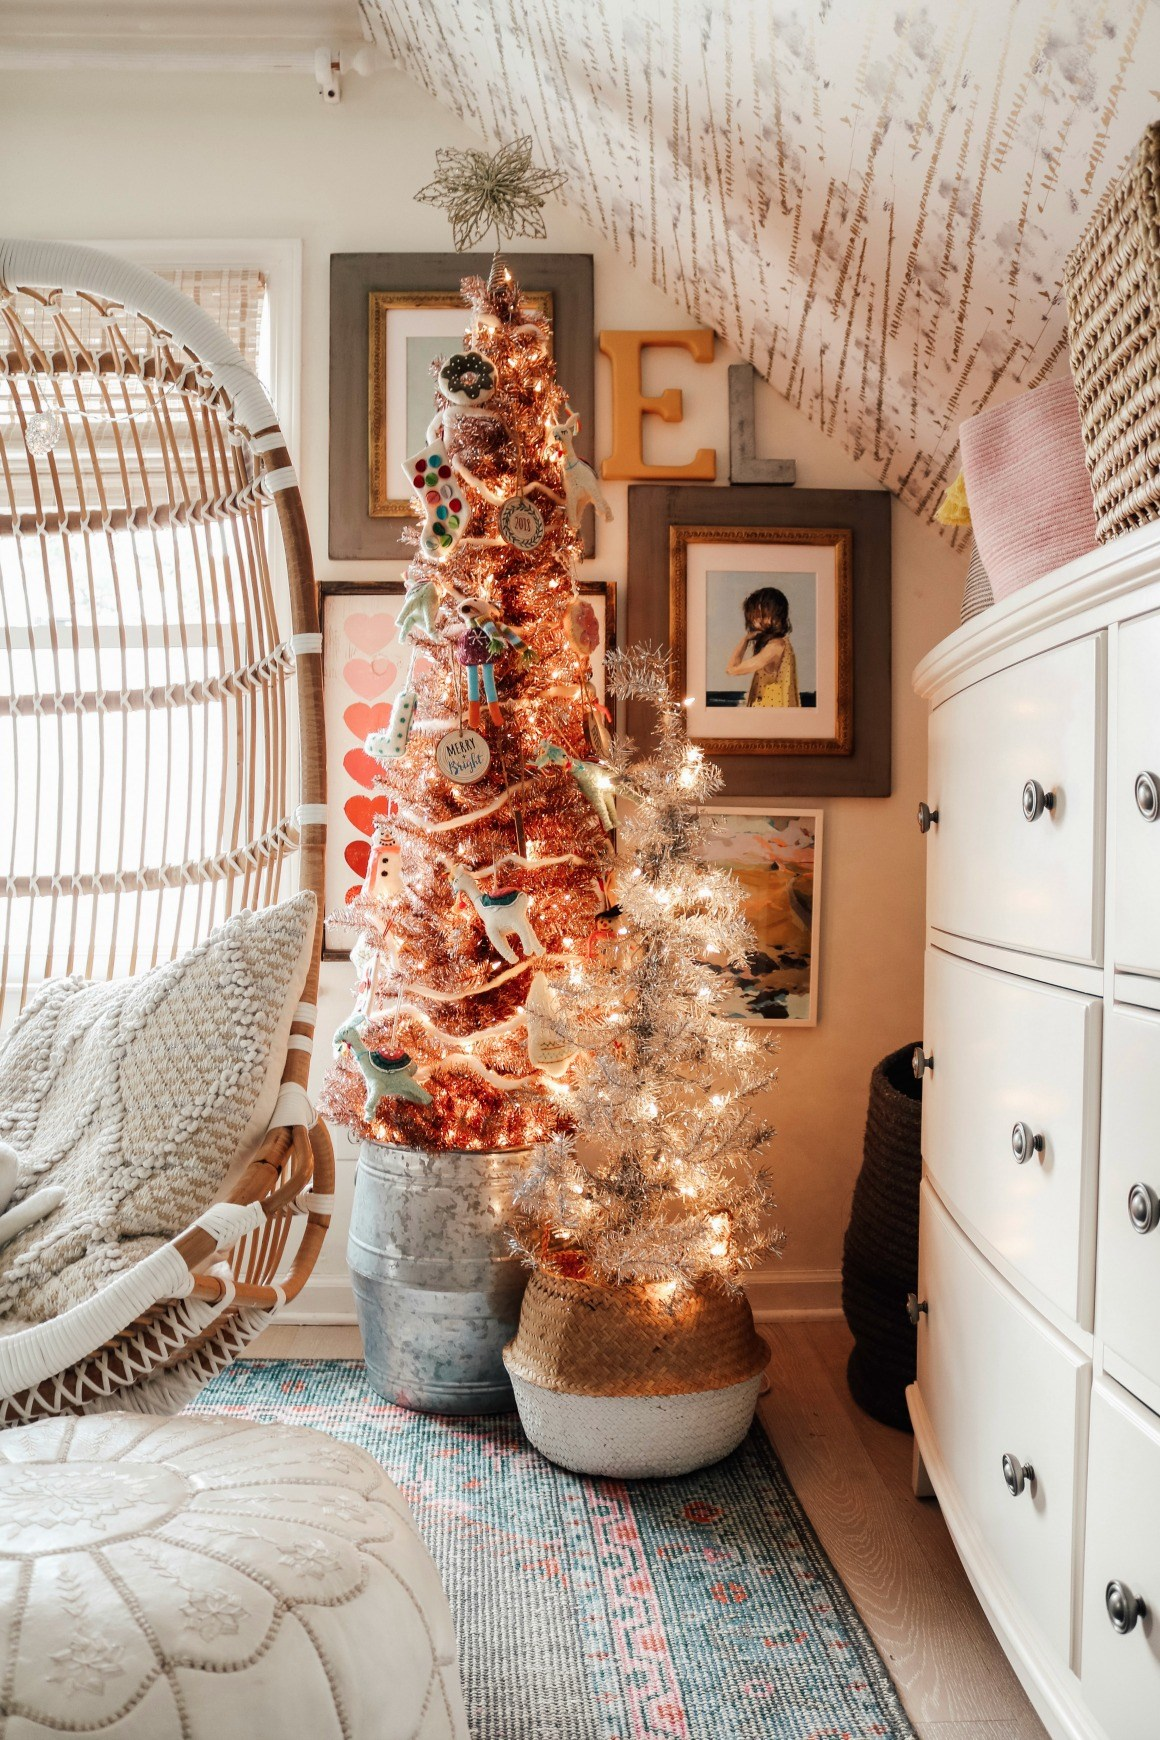 Love this kids bedroom with two metallic trees in baskets